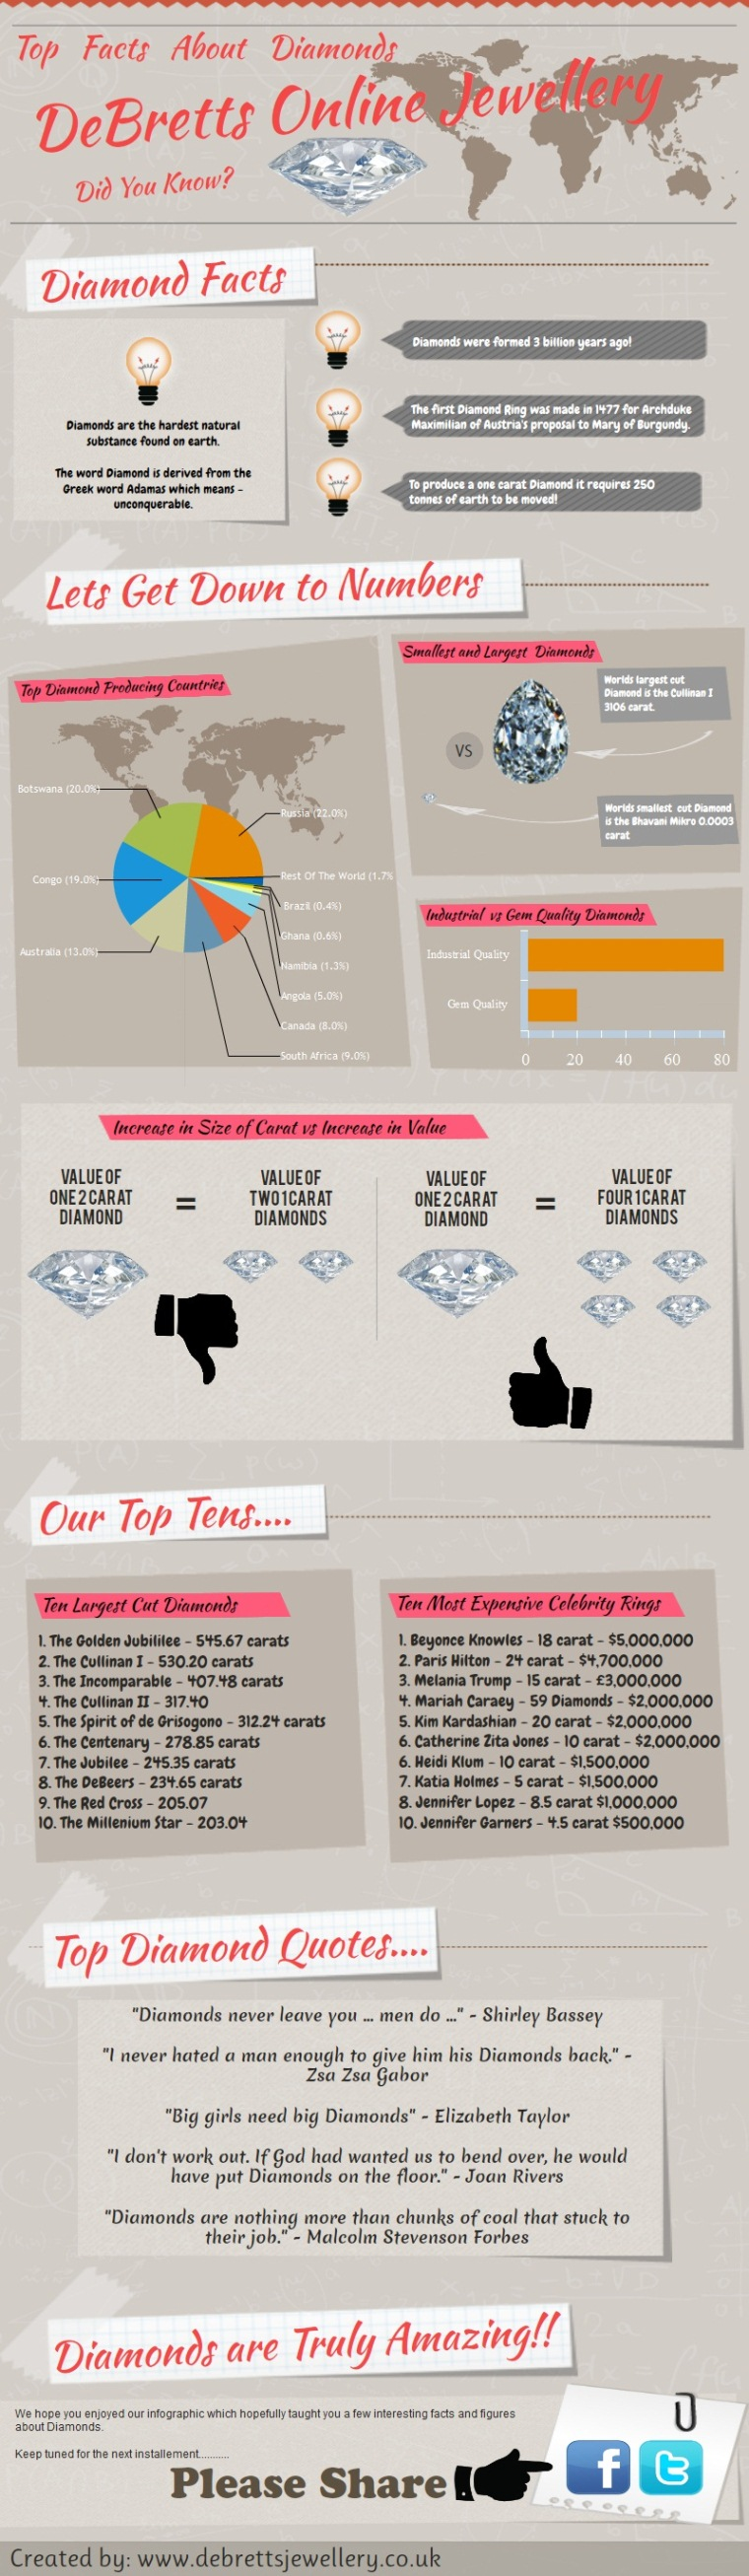 Top Facts About Diamonds